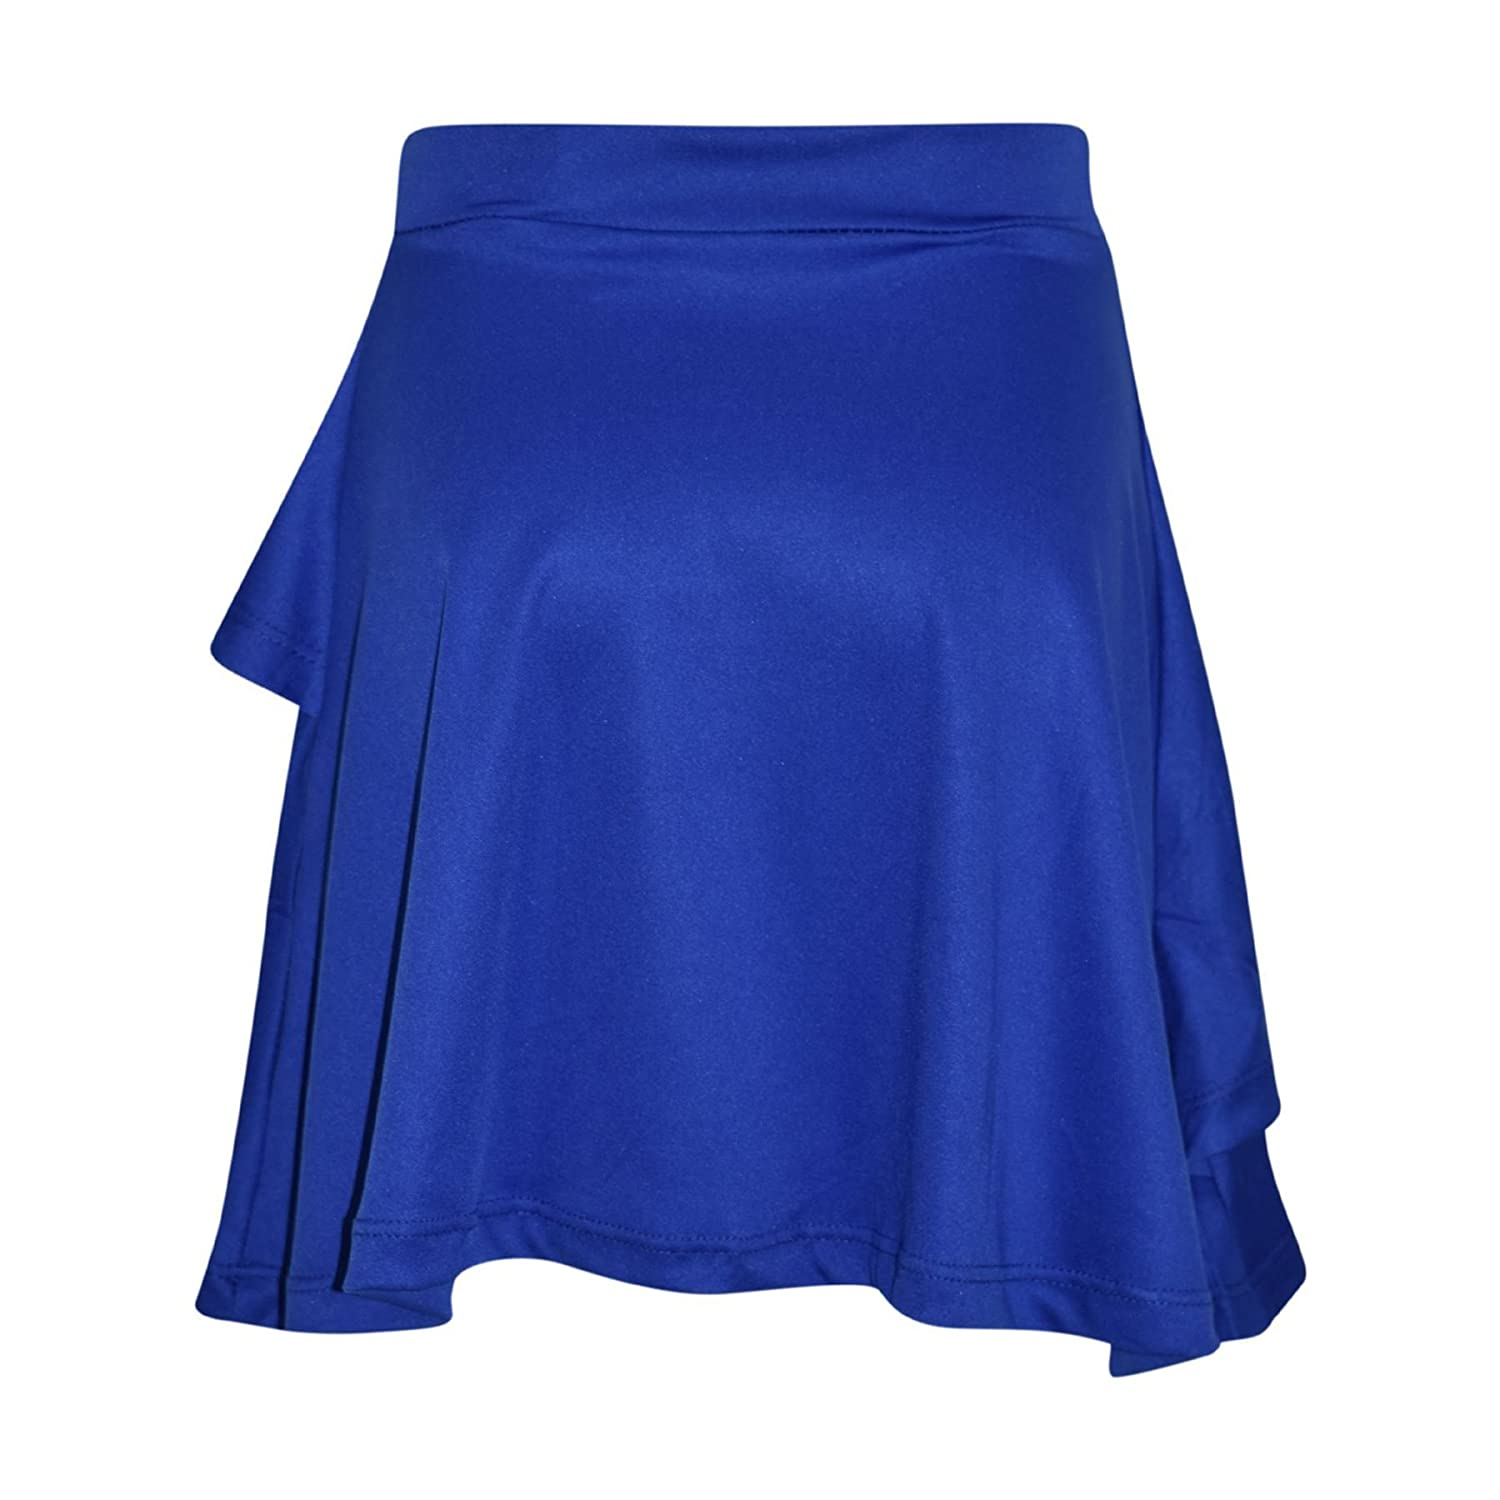 A2Z 4 Kids/® Girls Skirt Kids Plain Color Dance Double Layer Party Fashion Skirts 5-13 Year